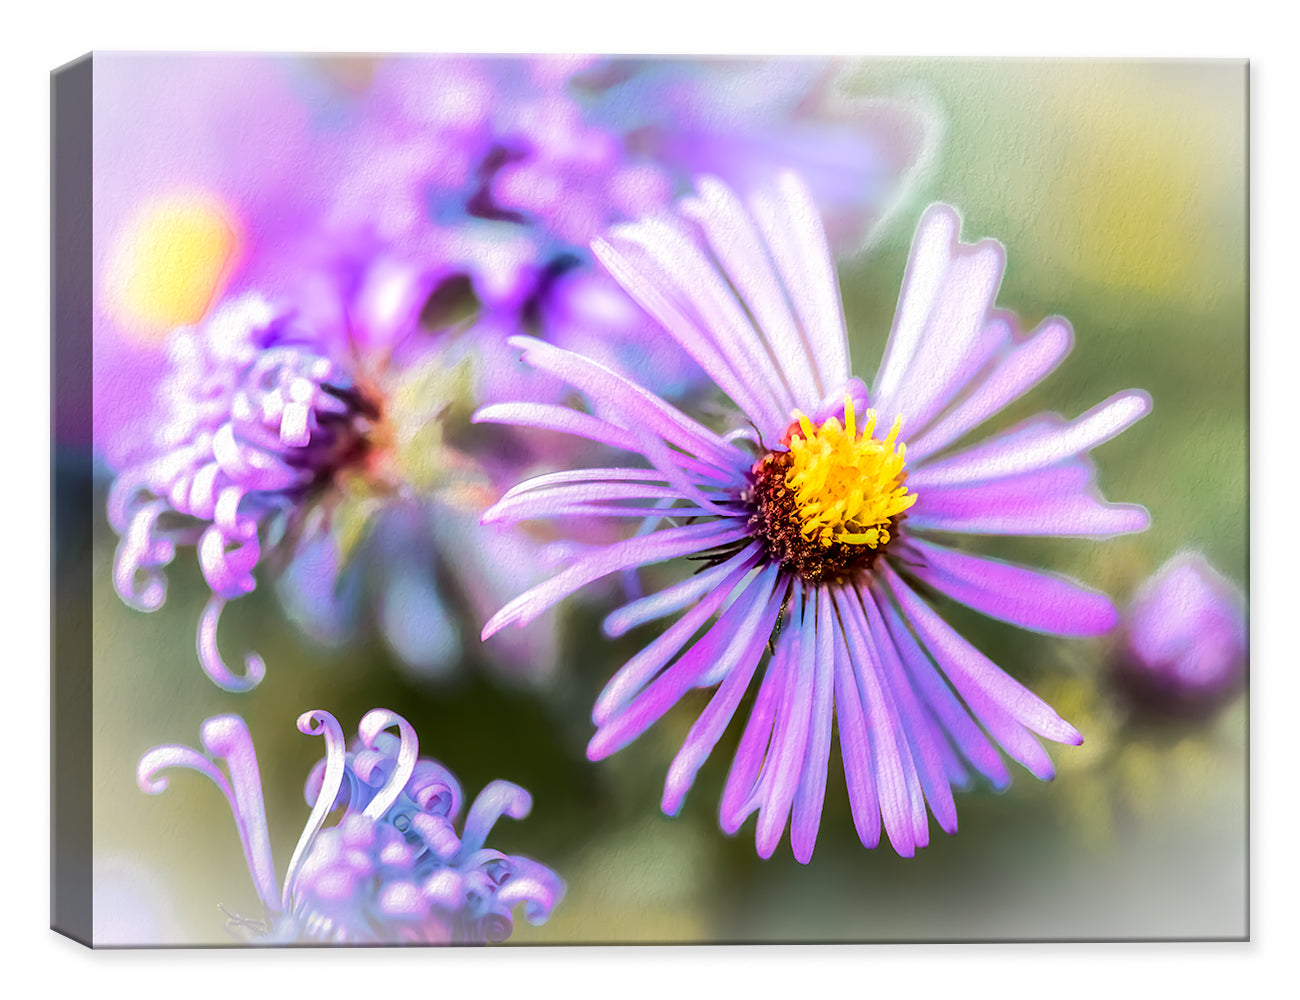 Wildflower - Pastels by Ray Huffman